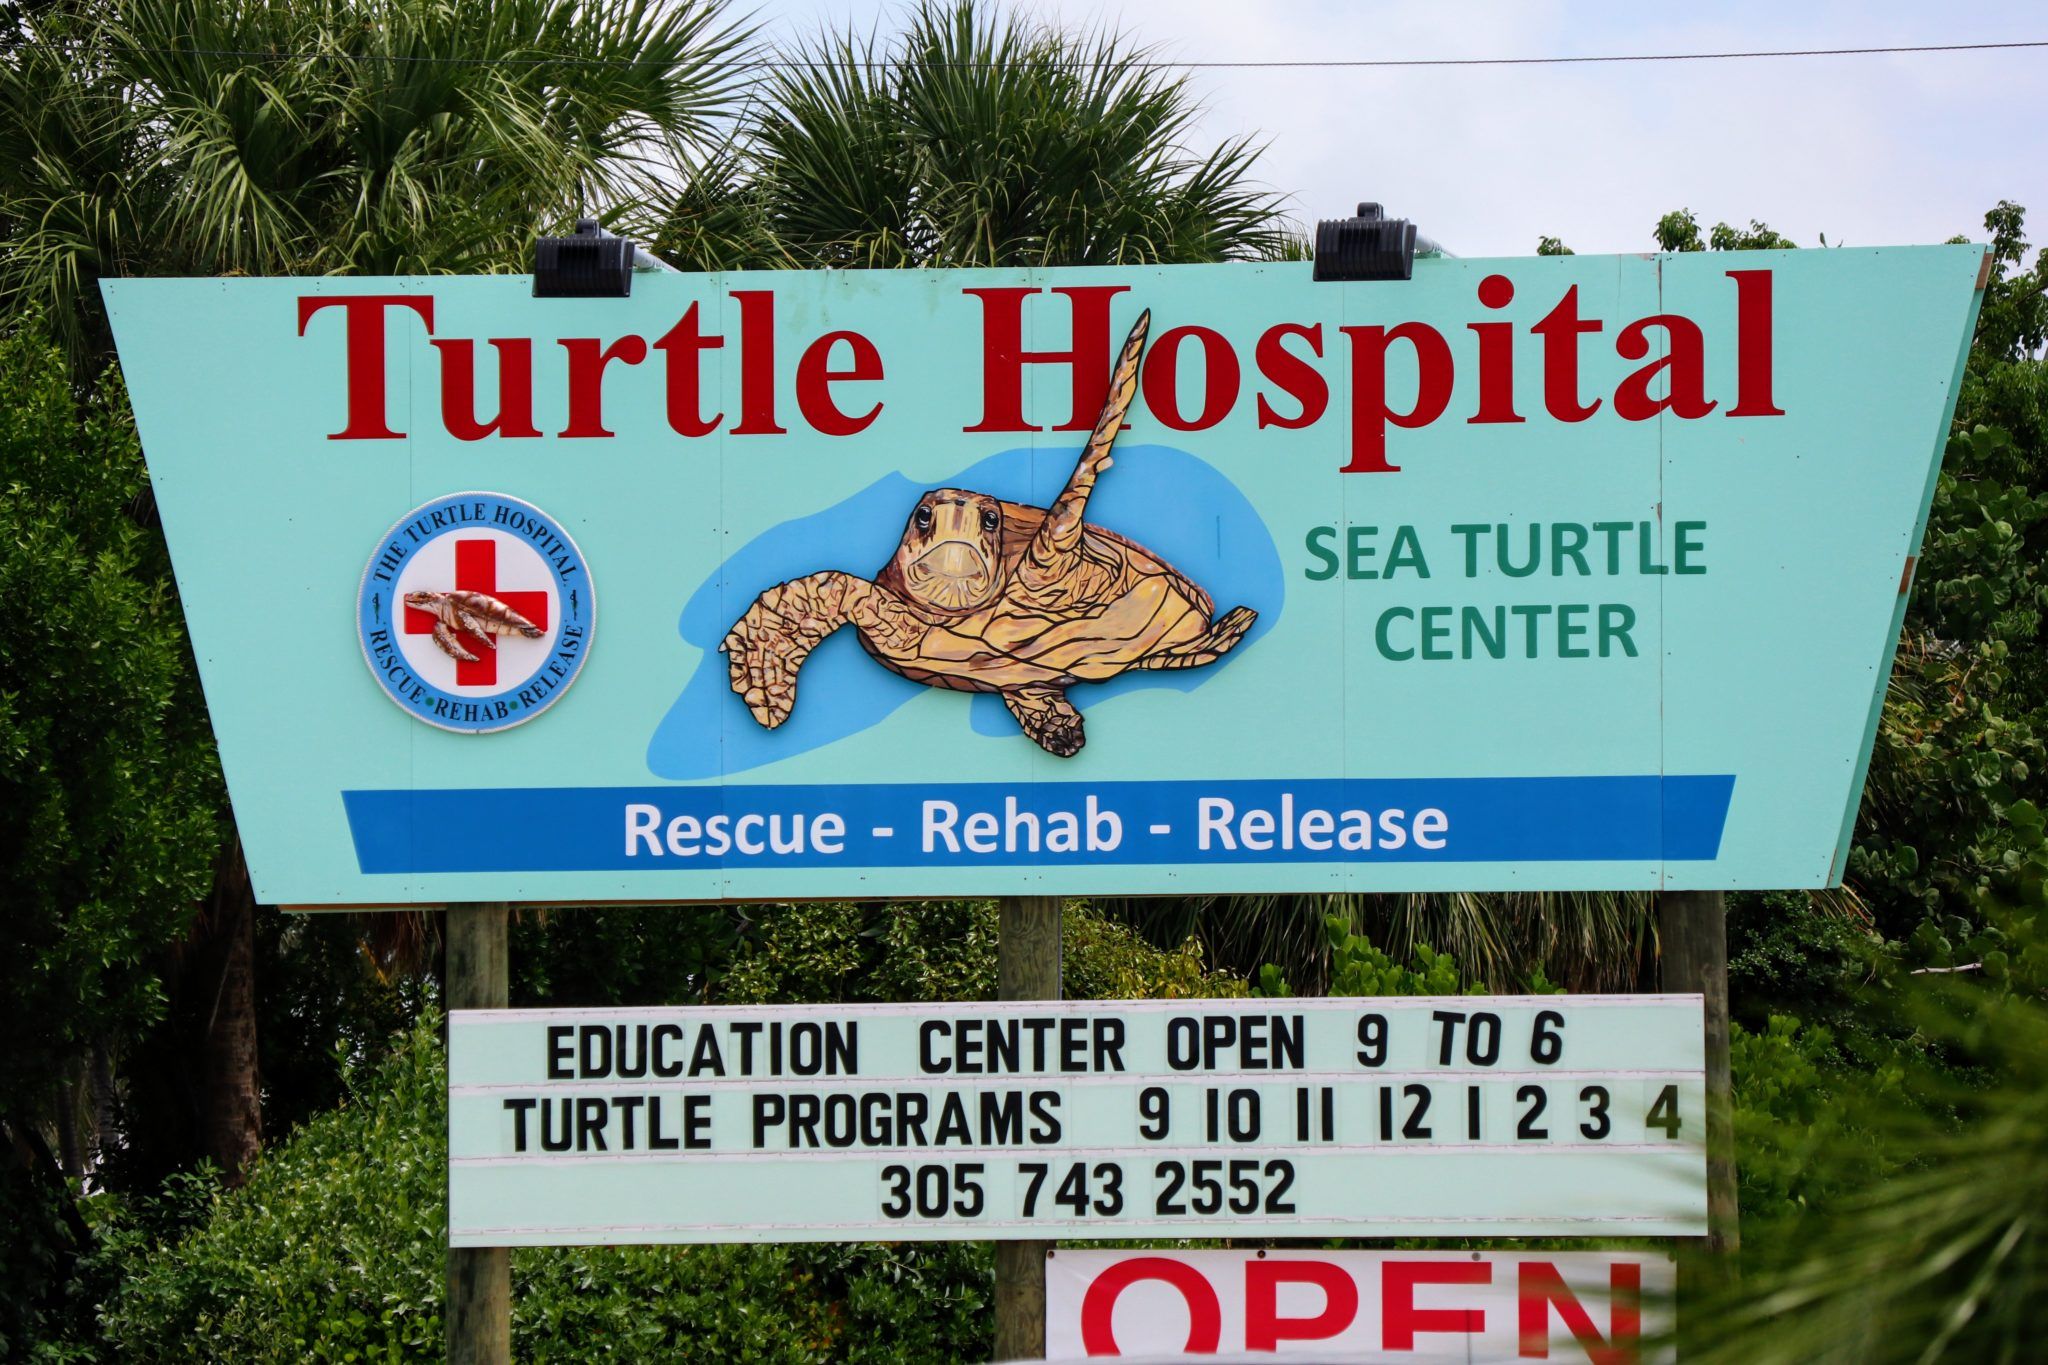 The Turtle Hospital sign with hours of operation.